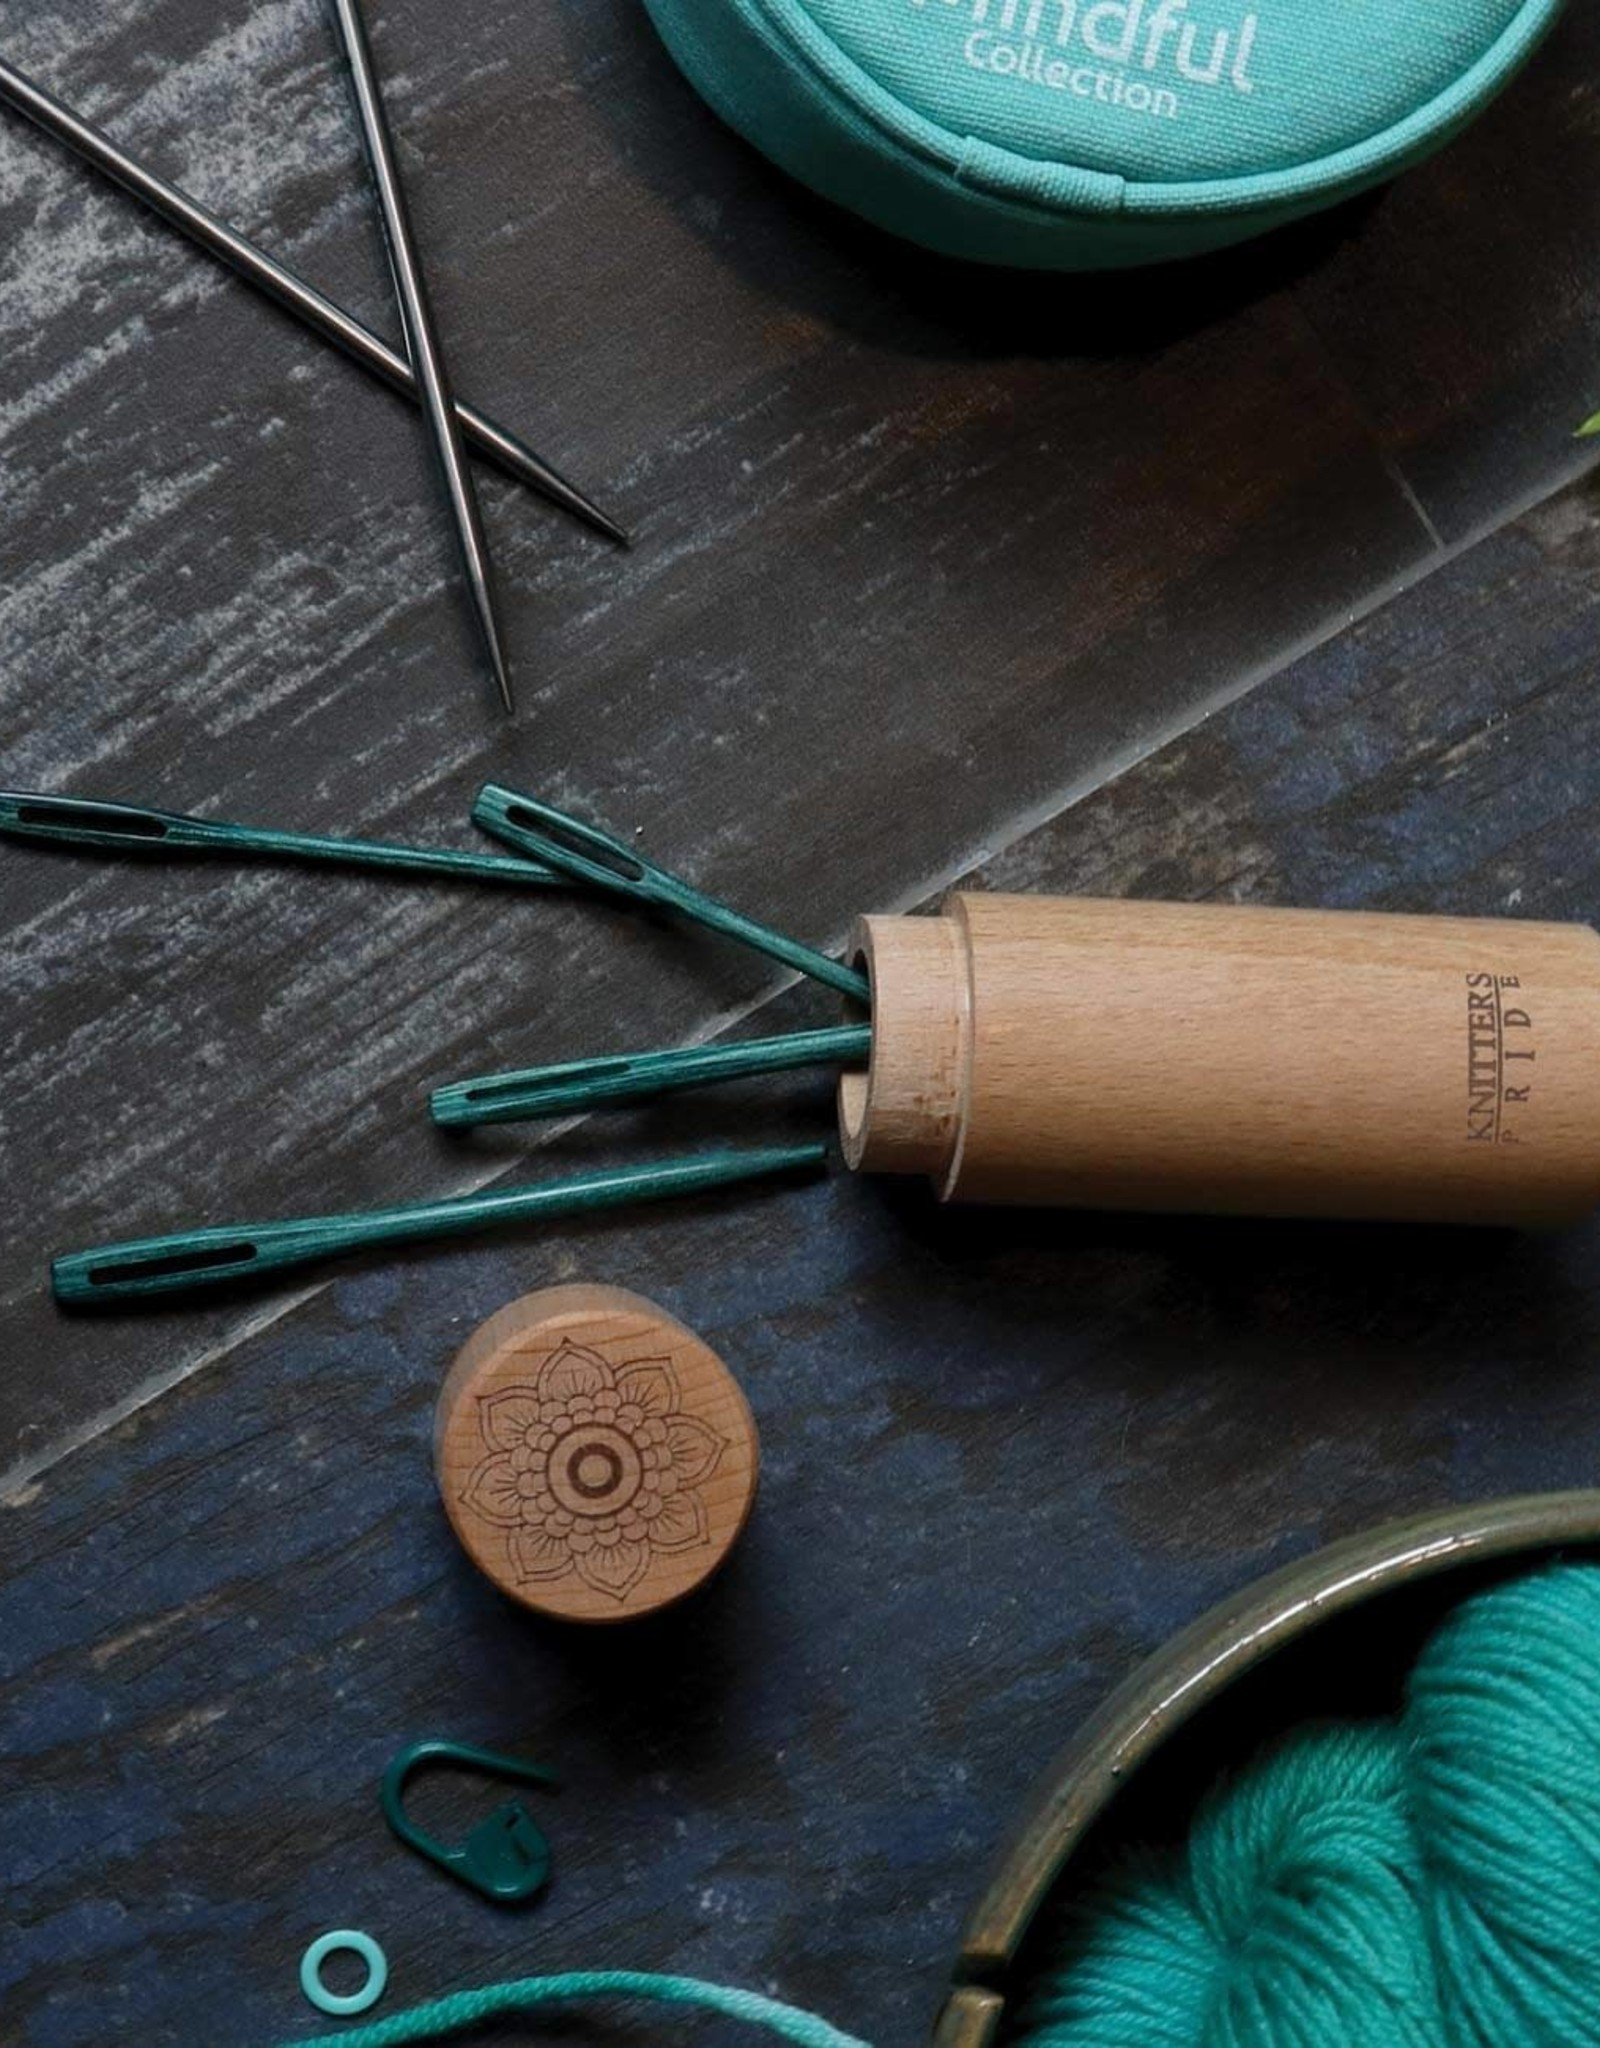 Teal Wooden Darning Needles: Mindful Collection from Knitter's Pride